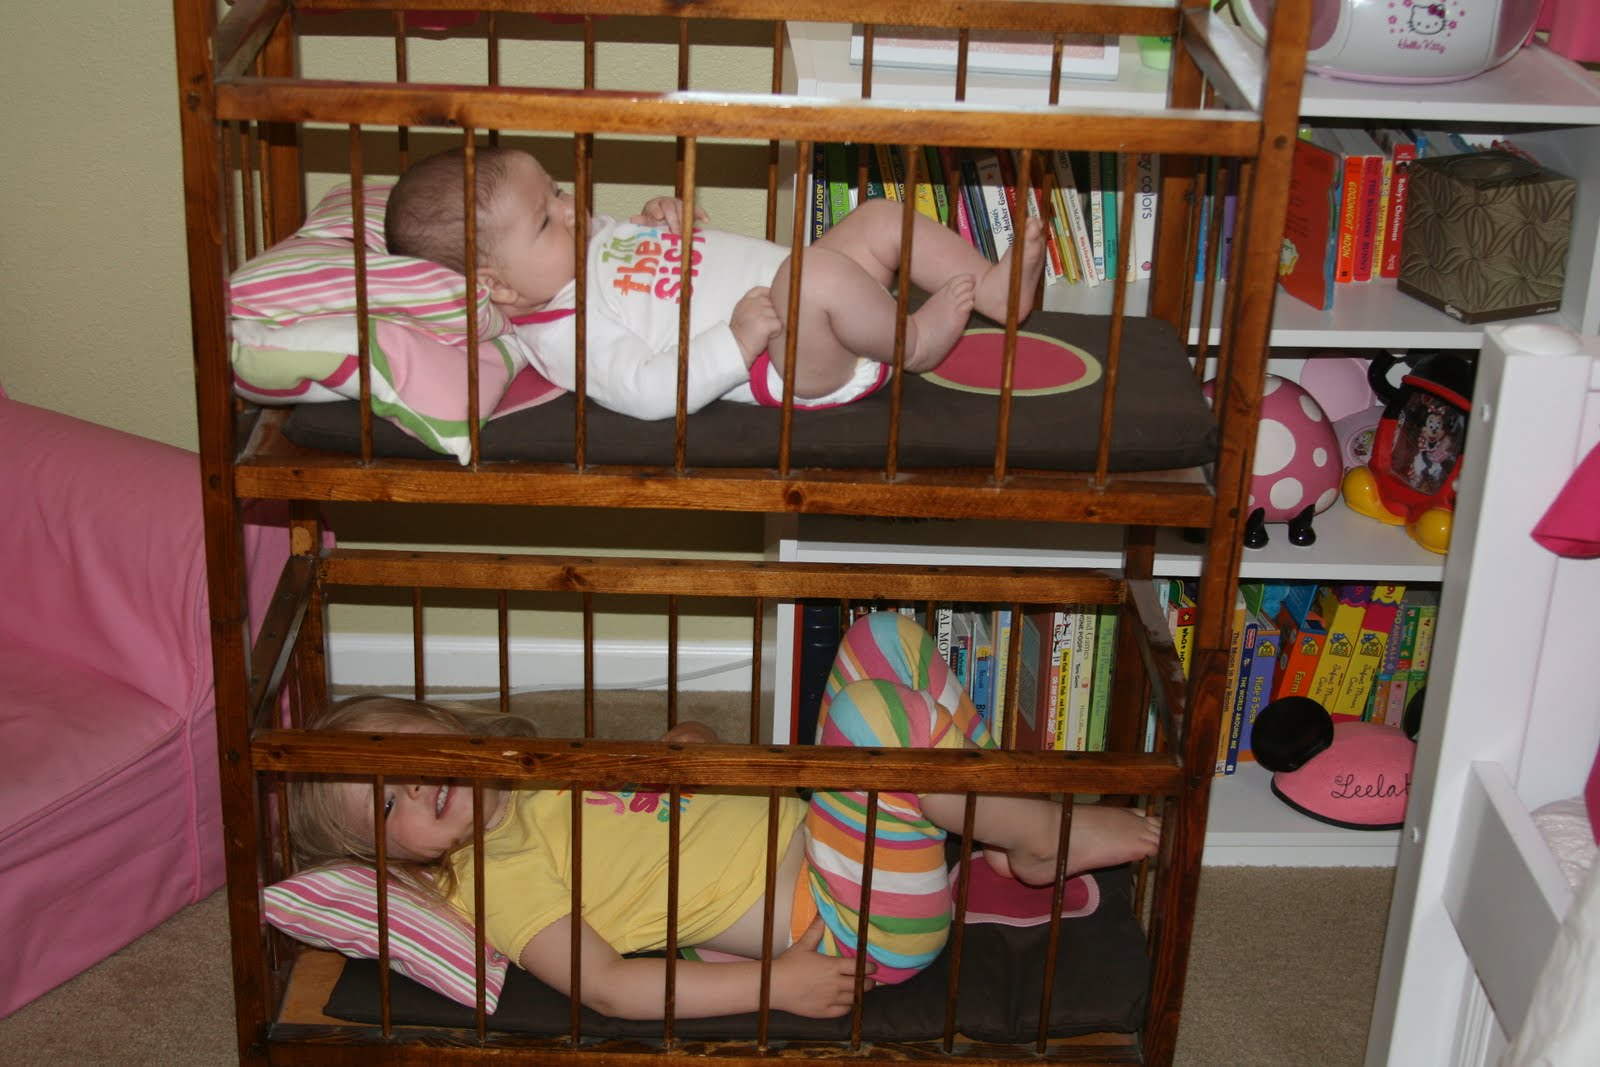 Space Saver Crib Size Bunk Bed for Toddler: 2015 Trend | HomesFeed